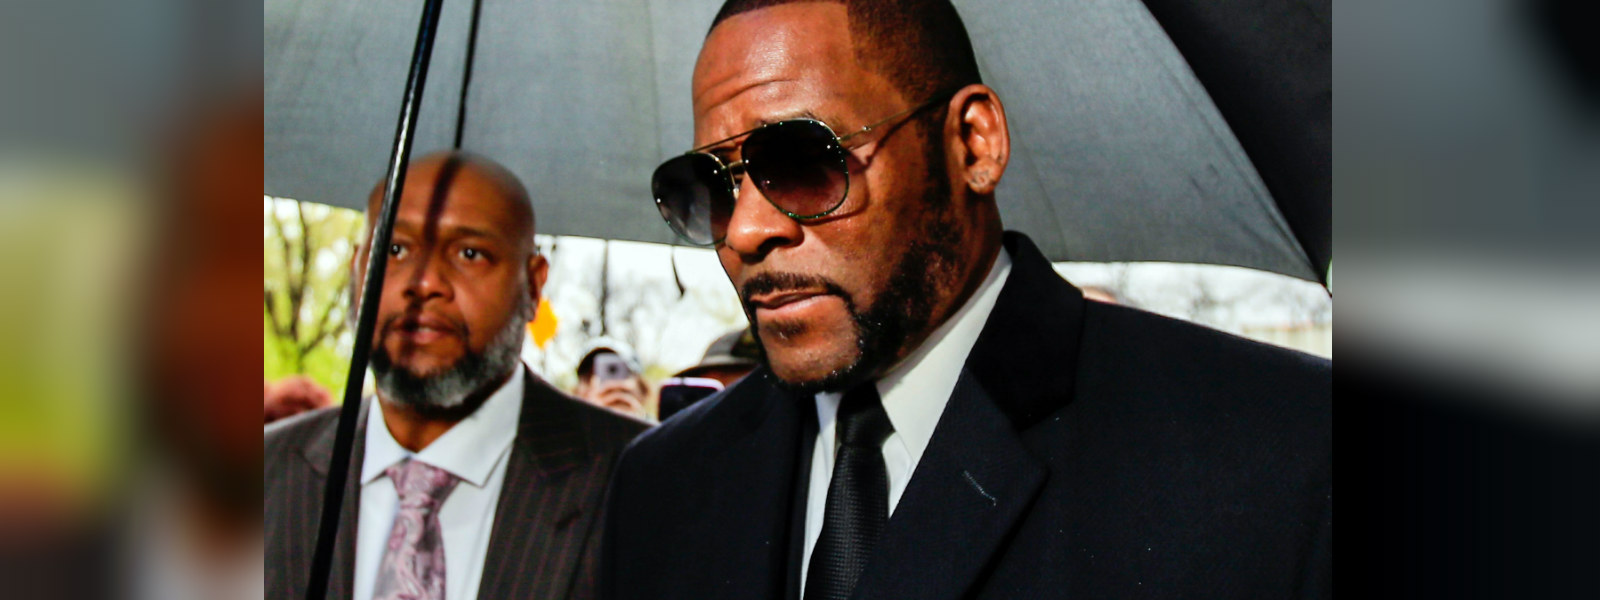 R. Kelly charged with 11 new felony counts of sexual abuse and assault